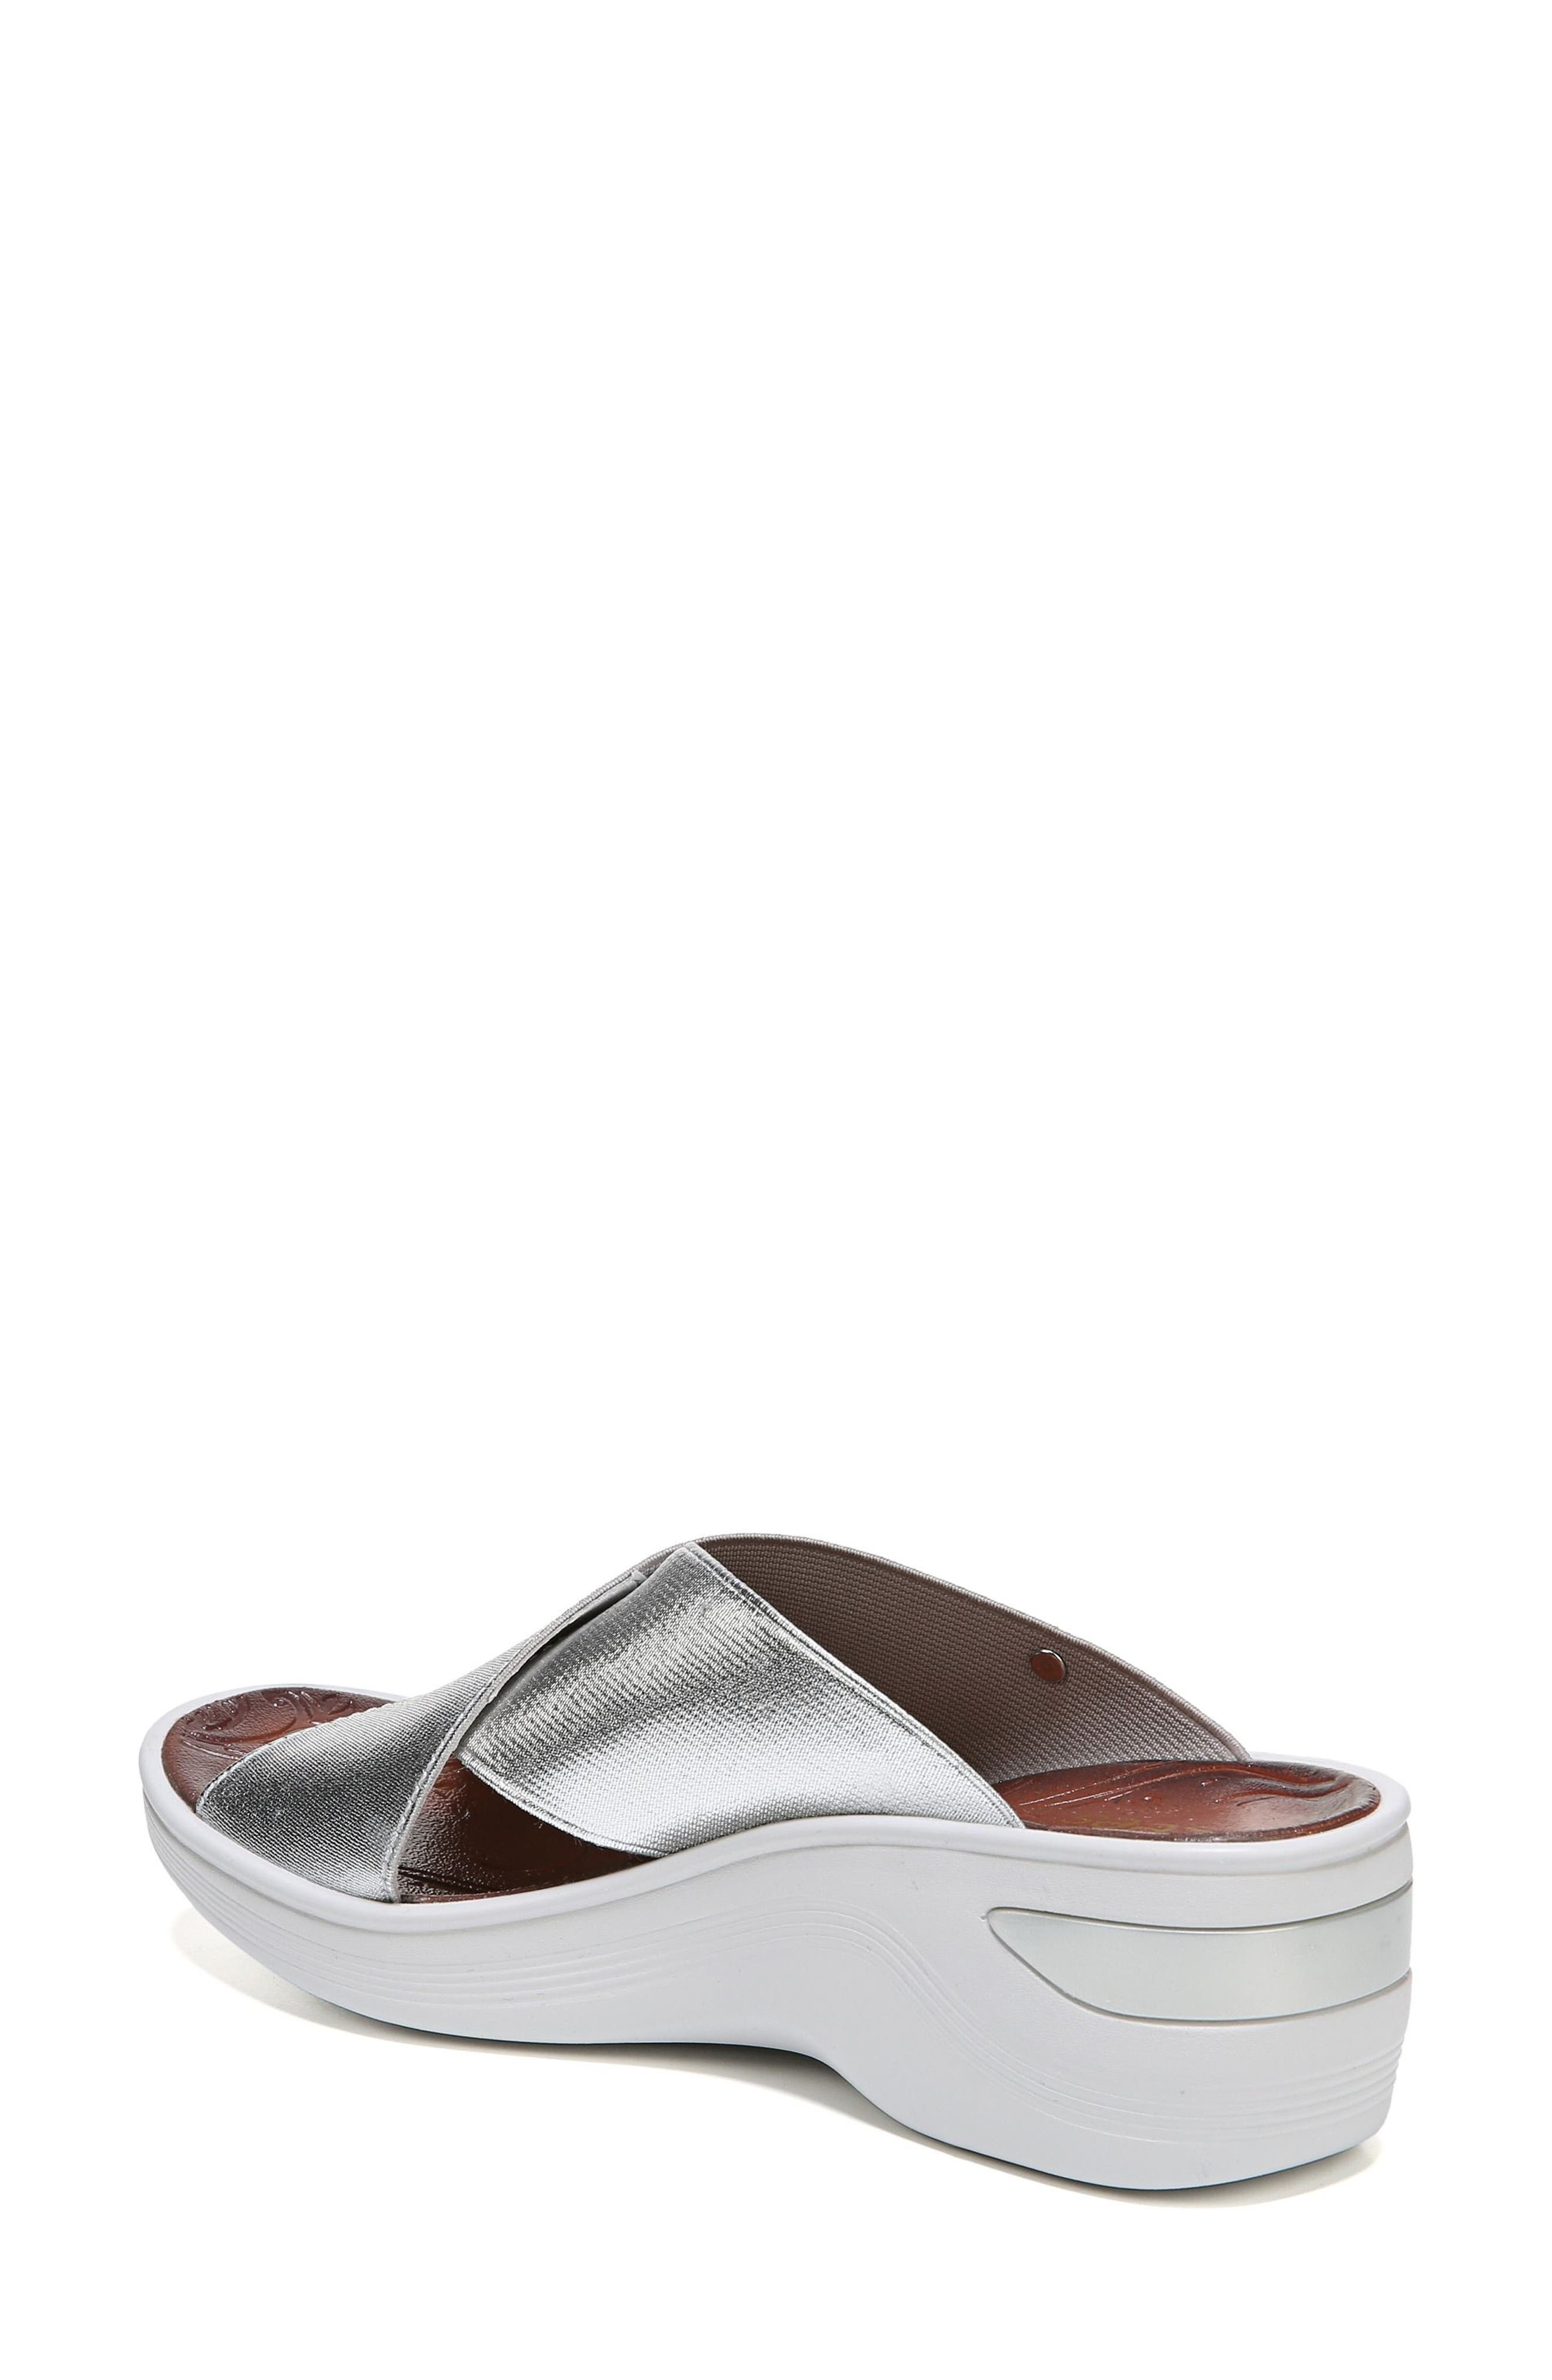 'Desire' Wedge Sandal,                             Alternate thumbnail 2, color,                             SILVER METALLIC